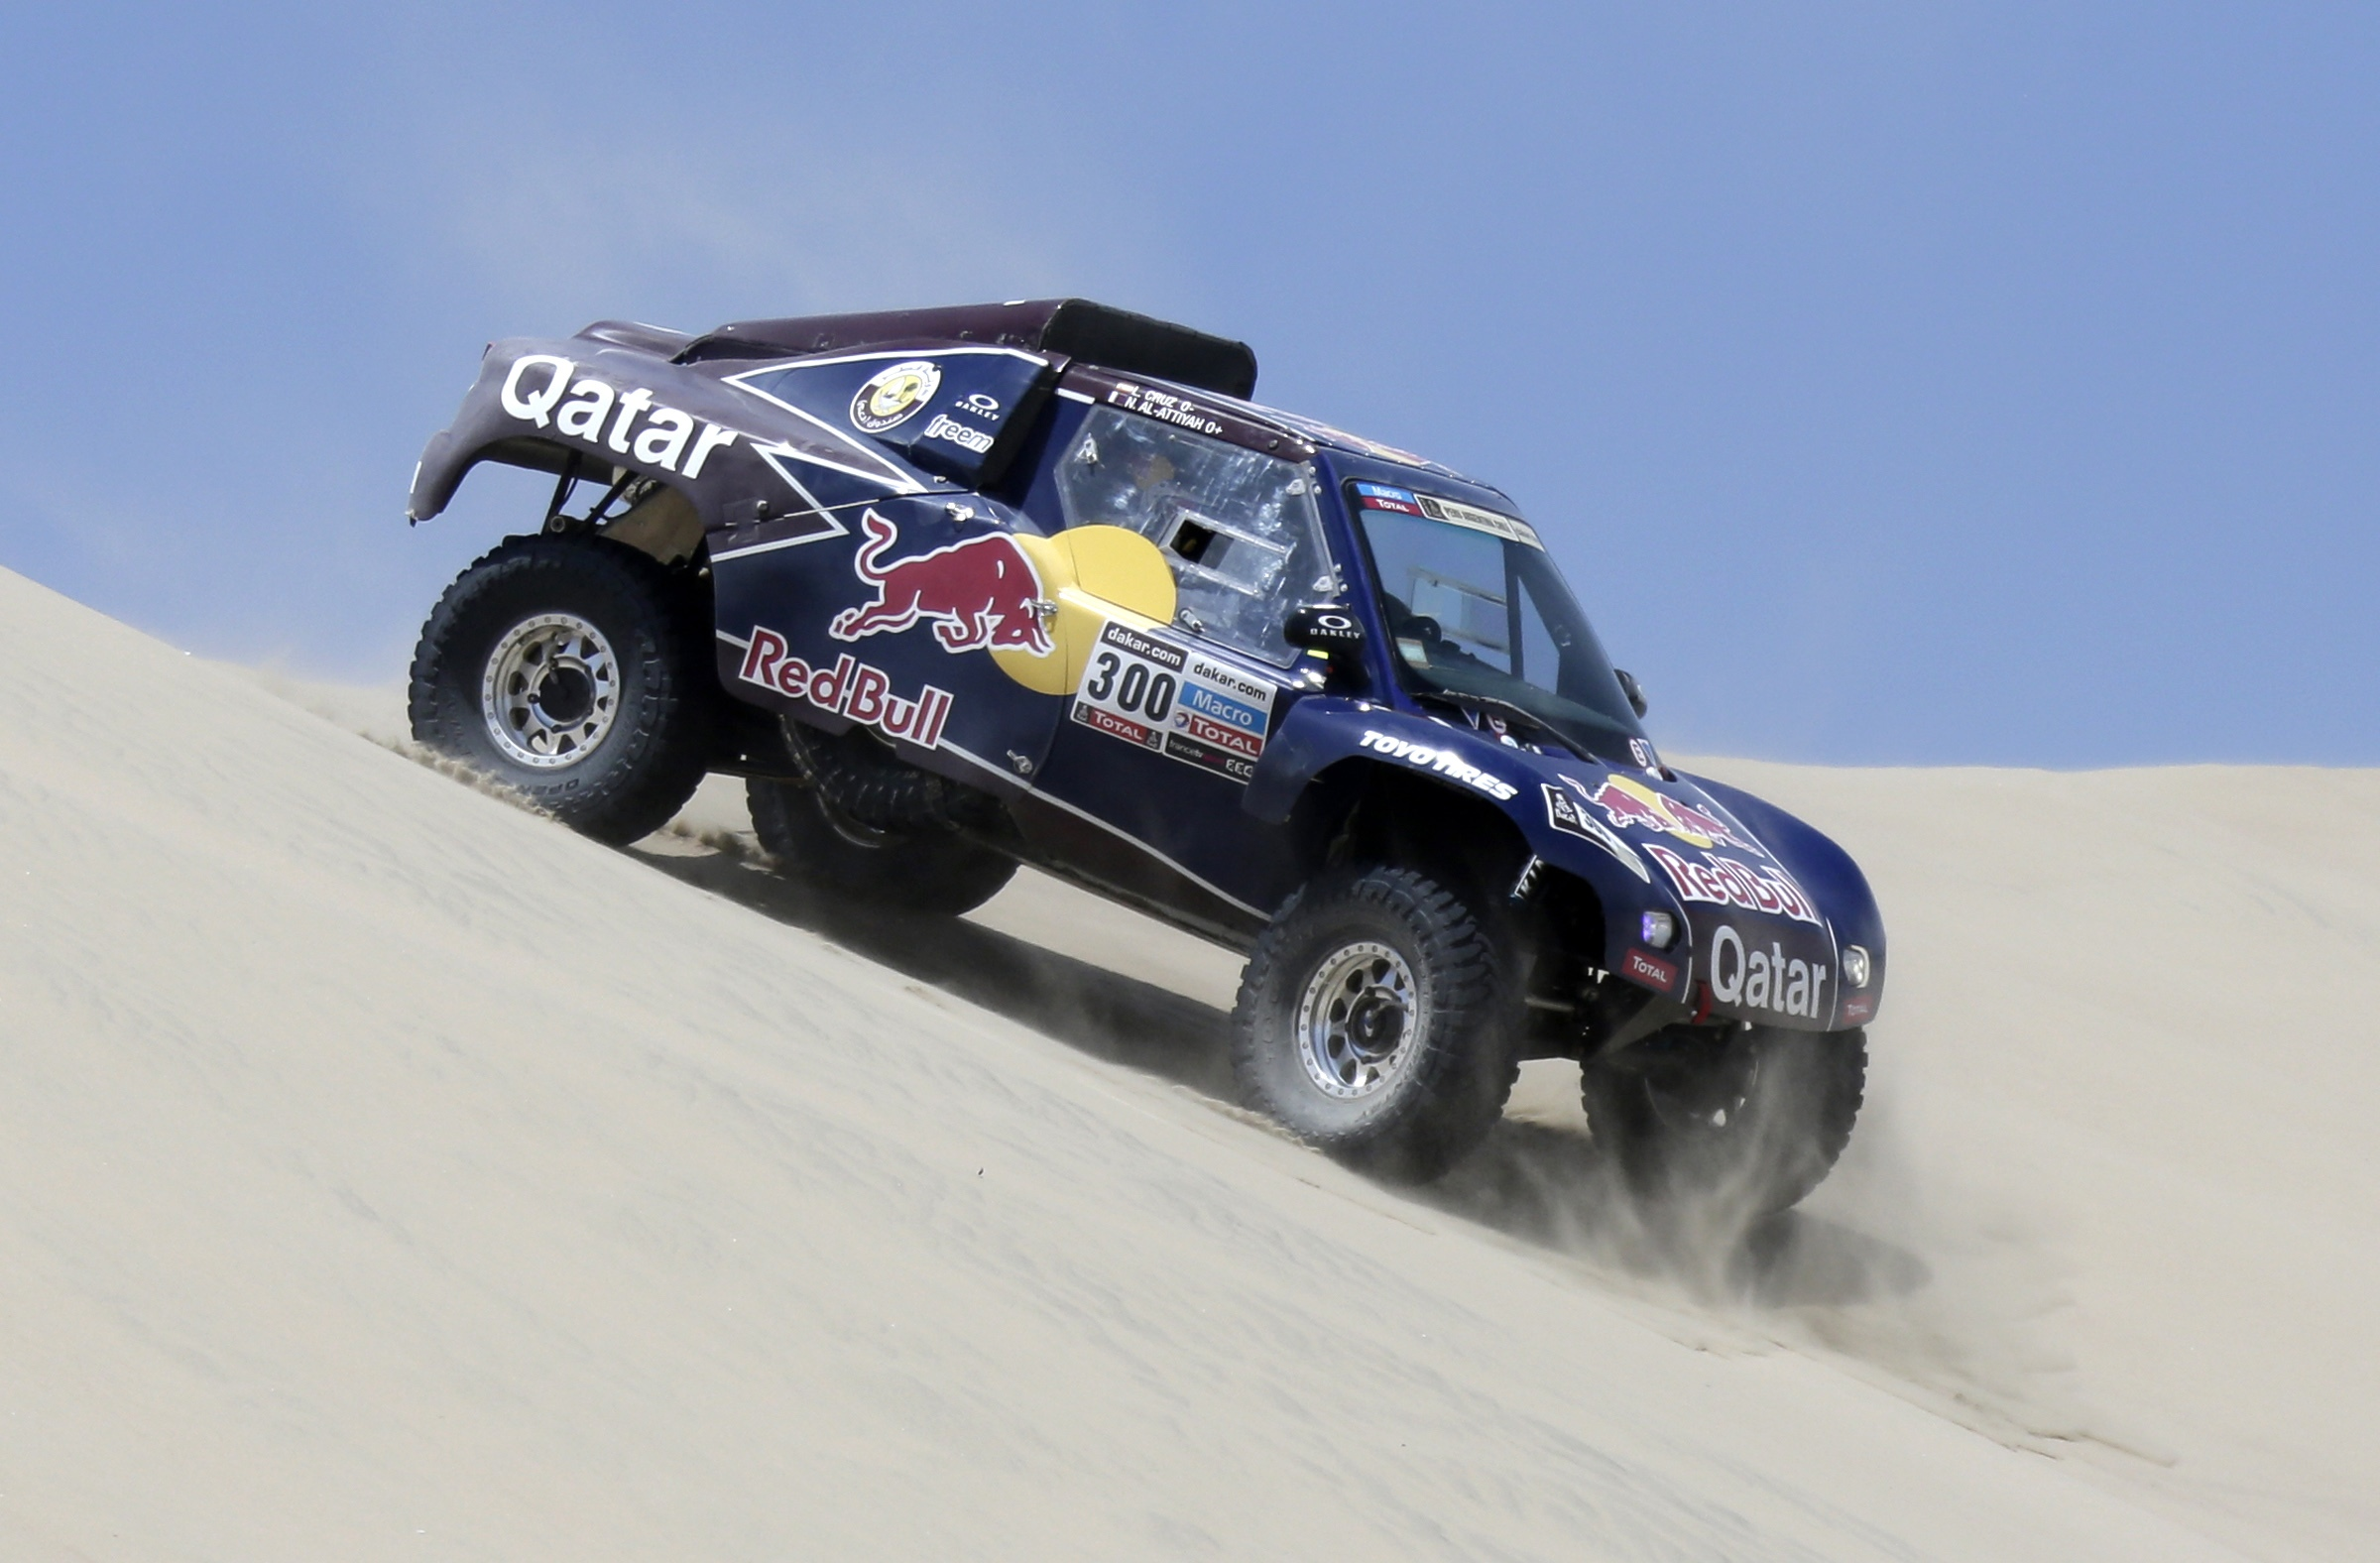 Qatar's Al-Attiyah and co-pilot Spain's Cruz compete with their Buggy during the second stage of the 2013 Dakar Rally from  Pisco to Pisco